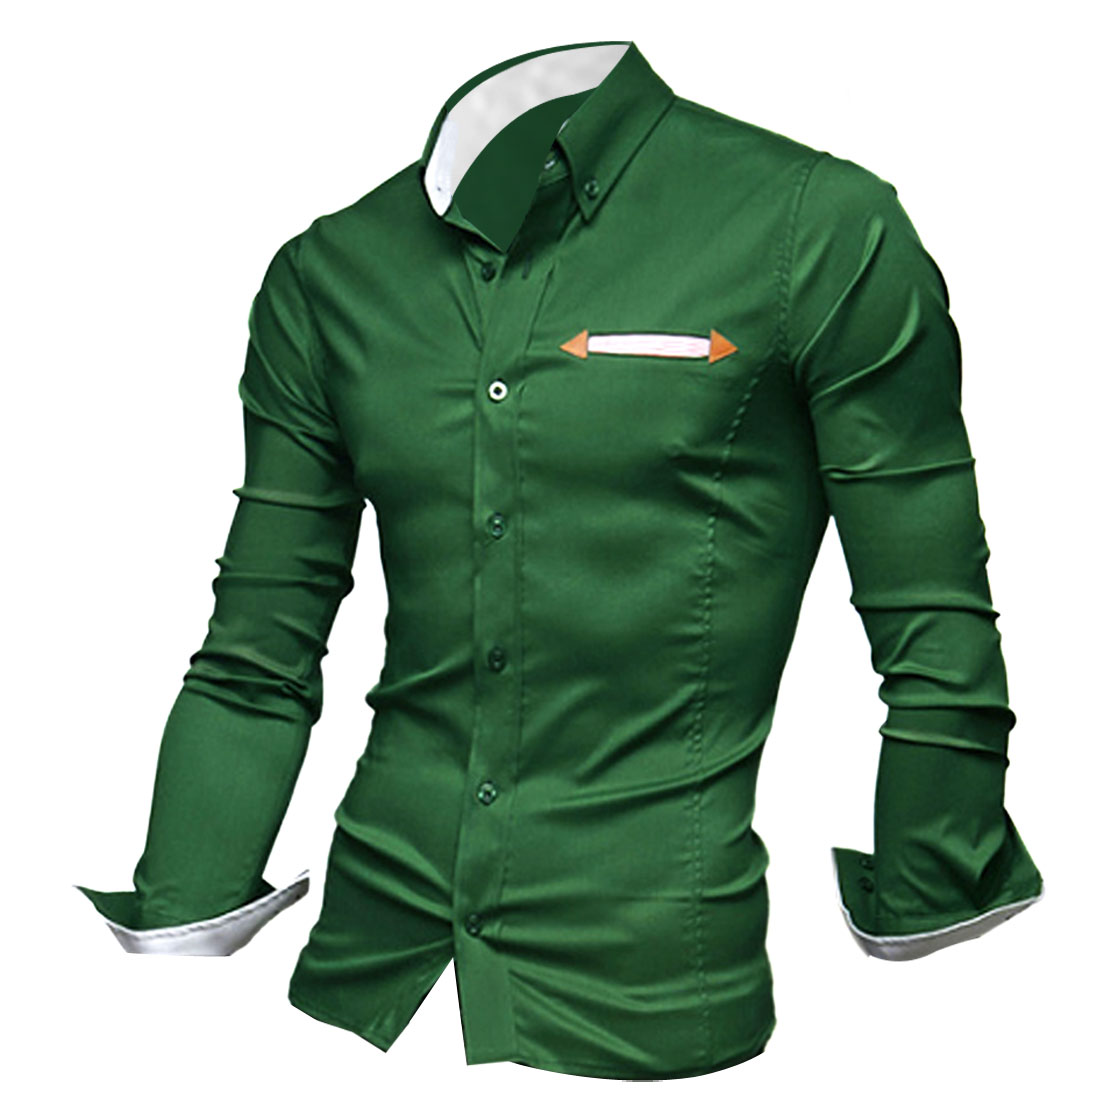 M Green Slim Fit Button Front Long Sleeve Design Men Stylish Top Shirt